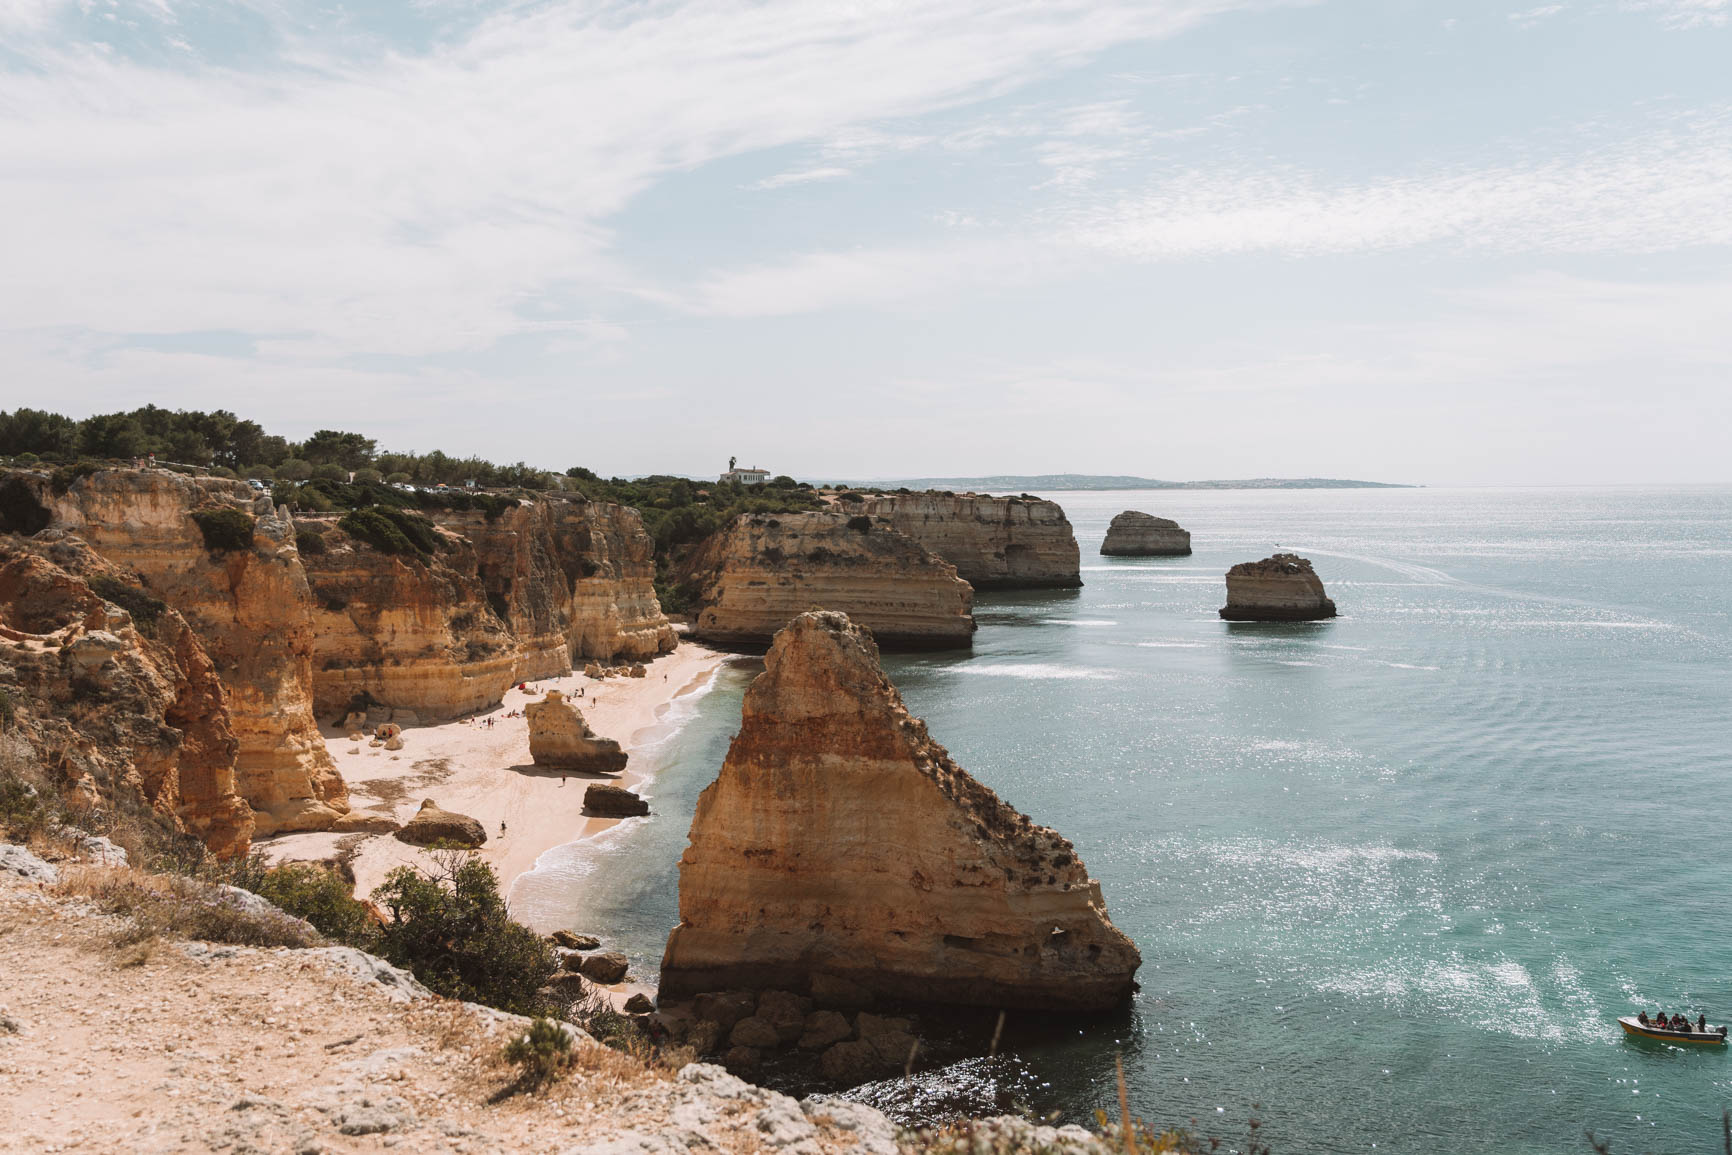 Beach view - Seven Hanging Valleys Trail West Algarve Portugal - 30 minutes away from Lagos #Portugal